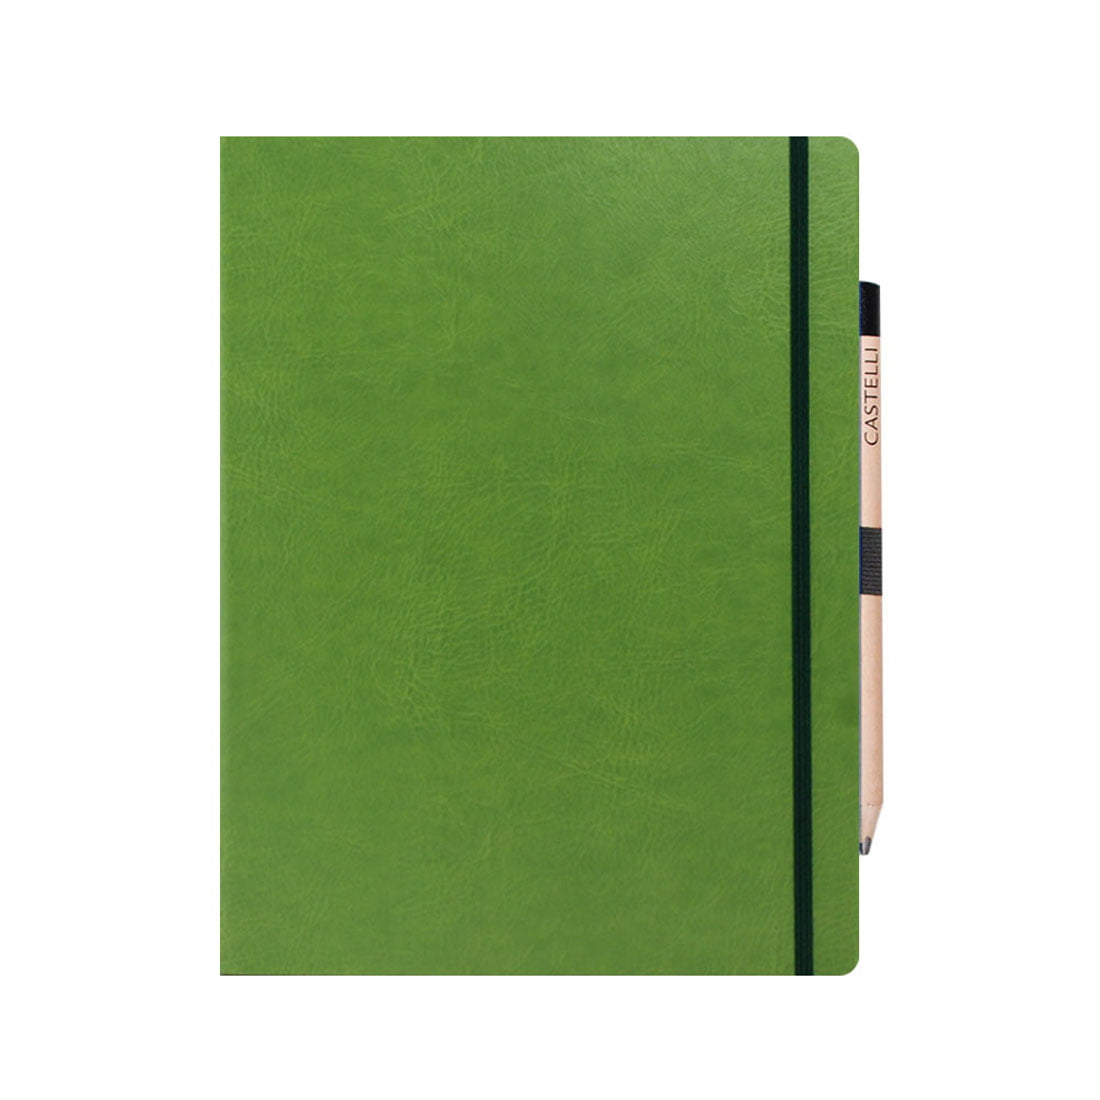 Notebook, large supplied with retro style pencil, internal document pocket.